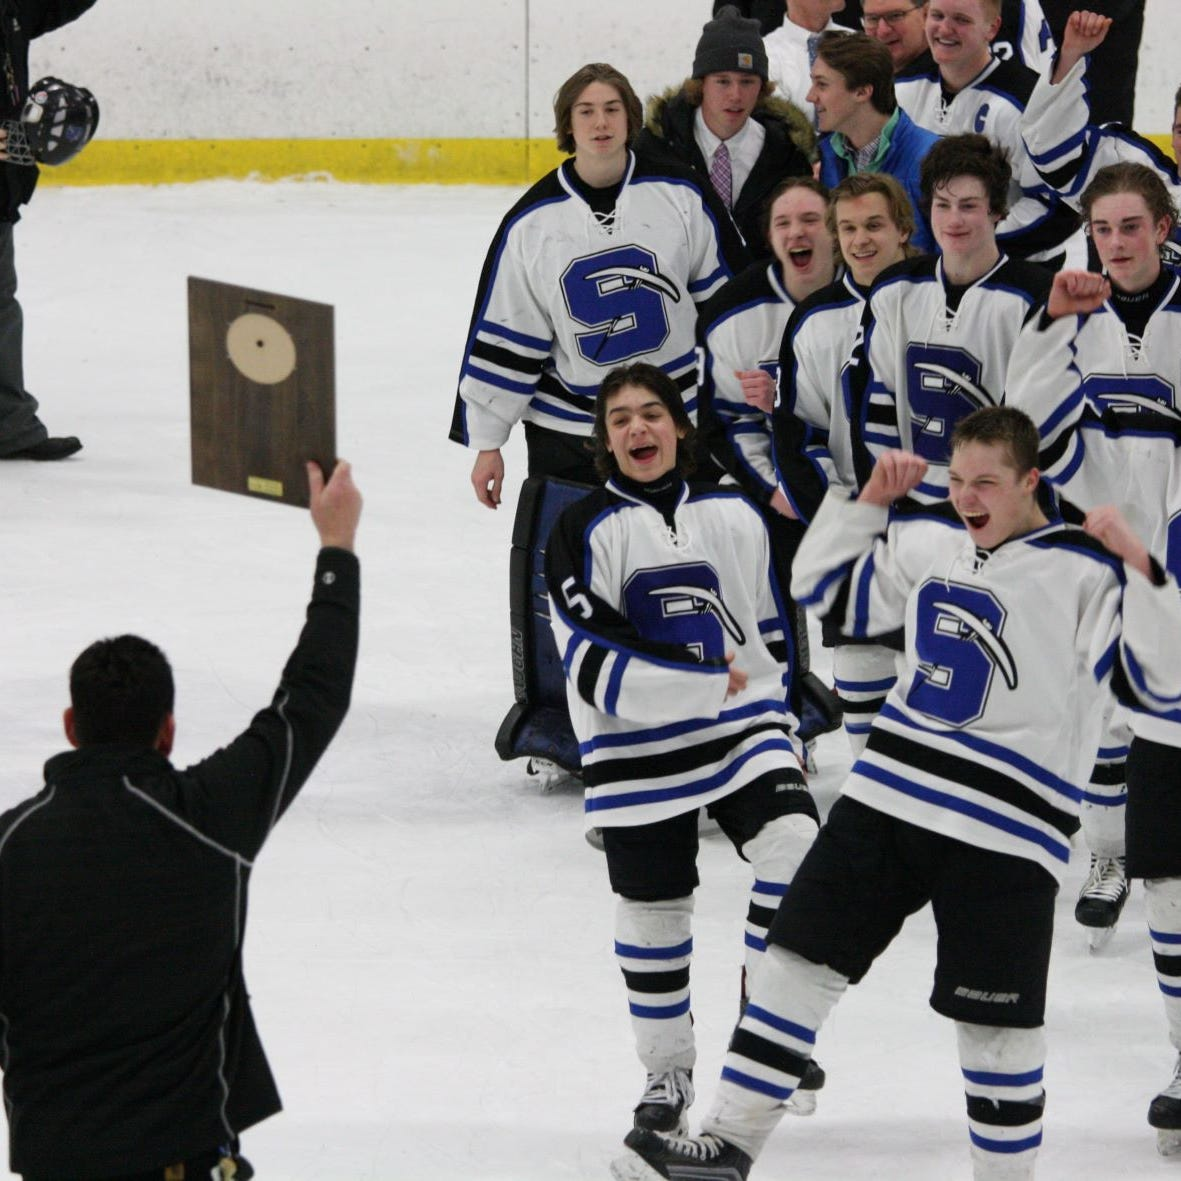 National high school association honors former St. Mary's Springs hockey coach